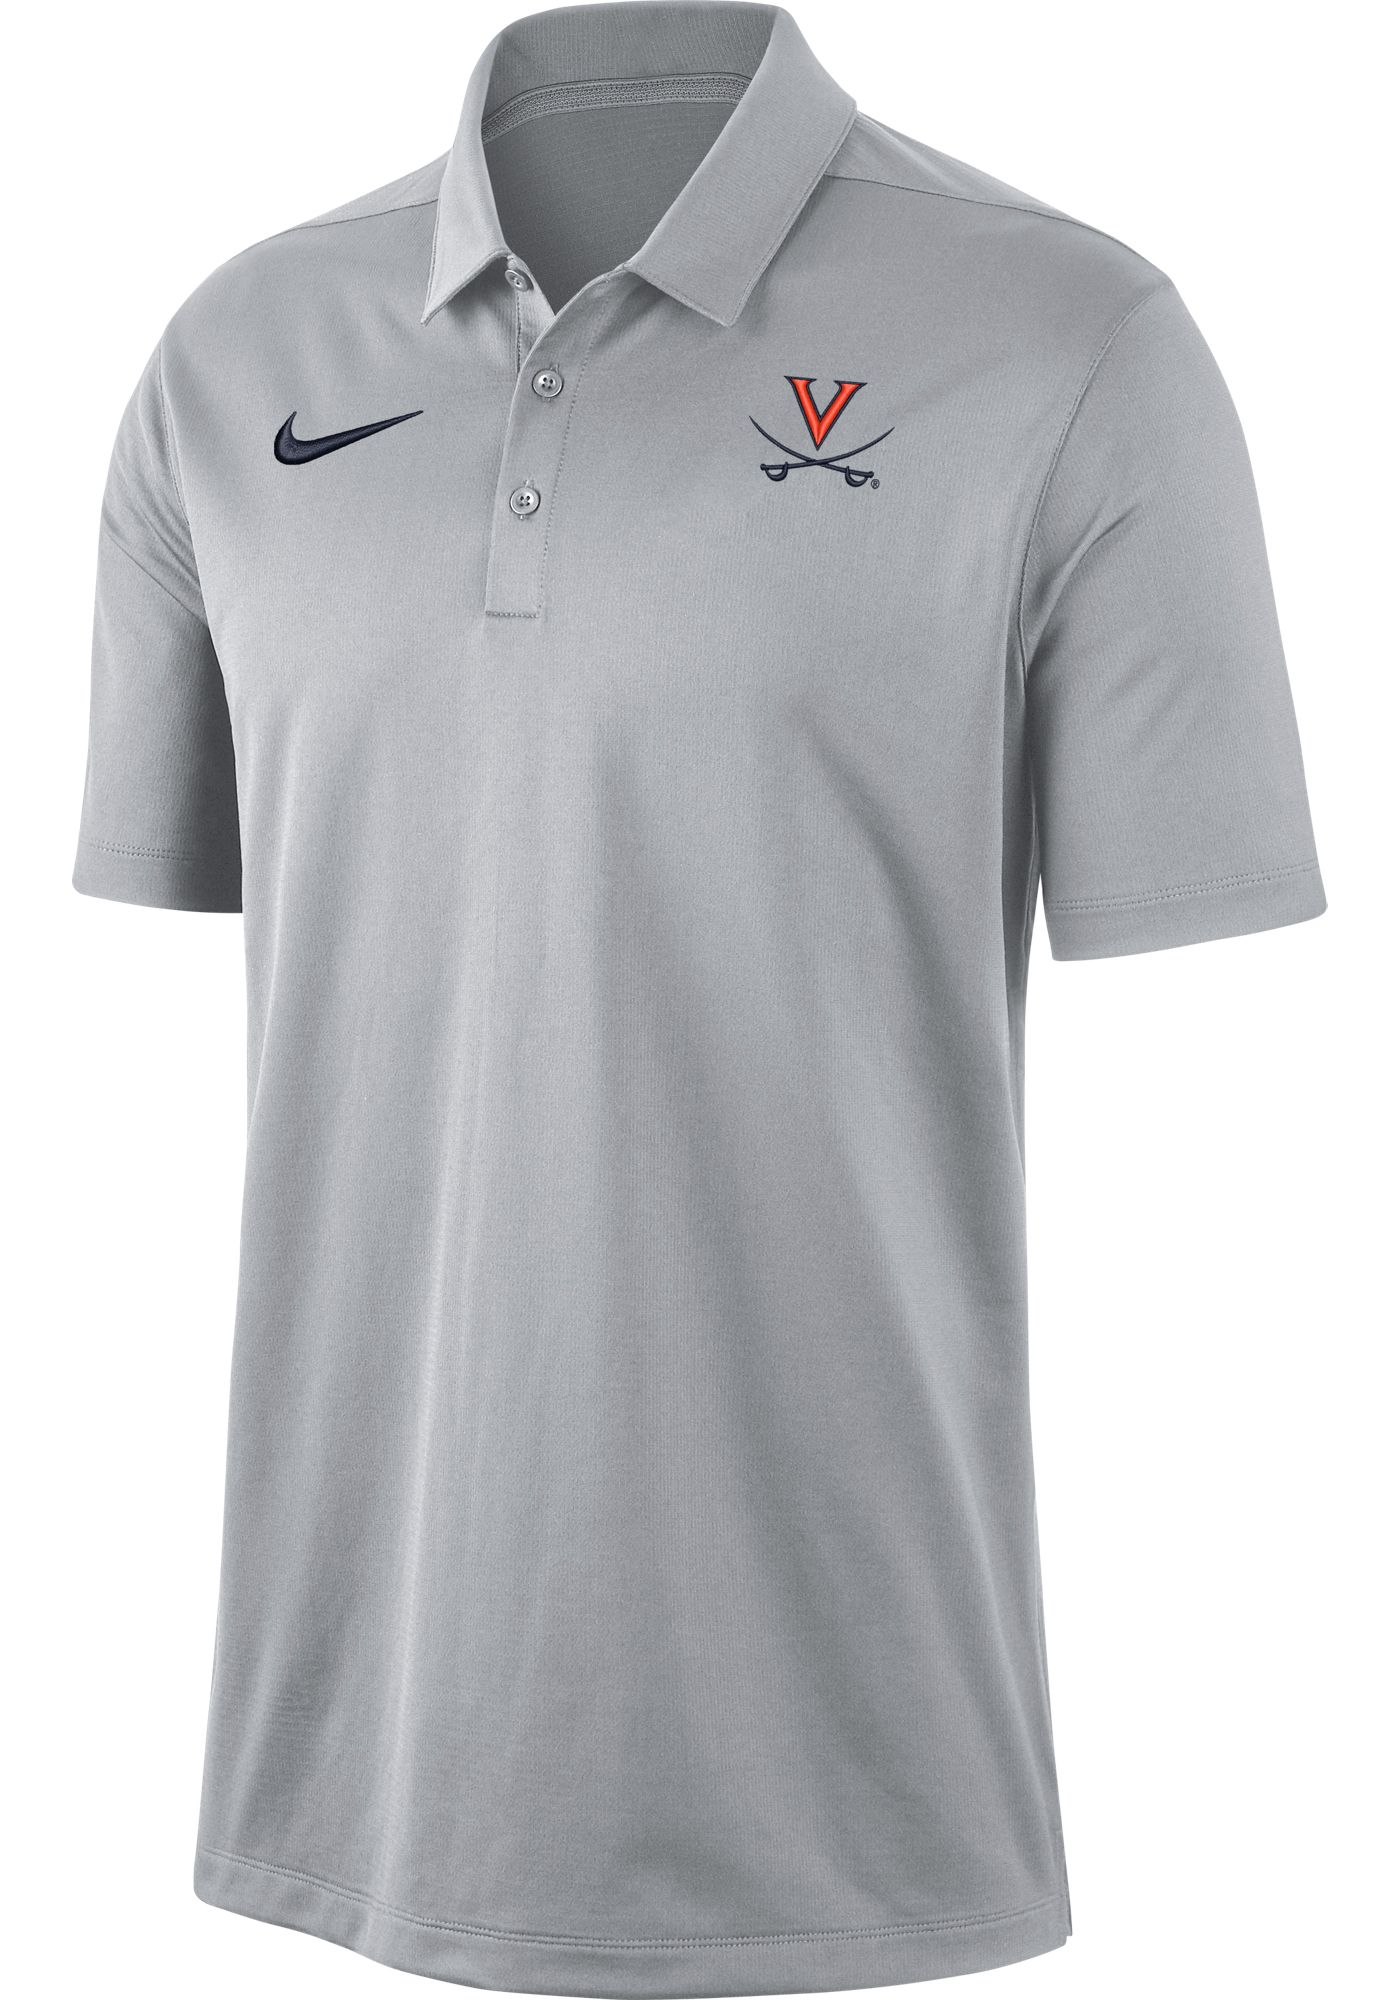 Nike Men's Virginia Cavaliers Grey Dri-FIT Franchise Polo